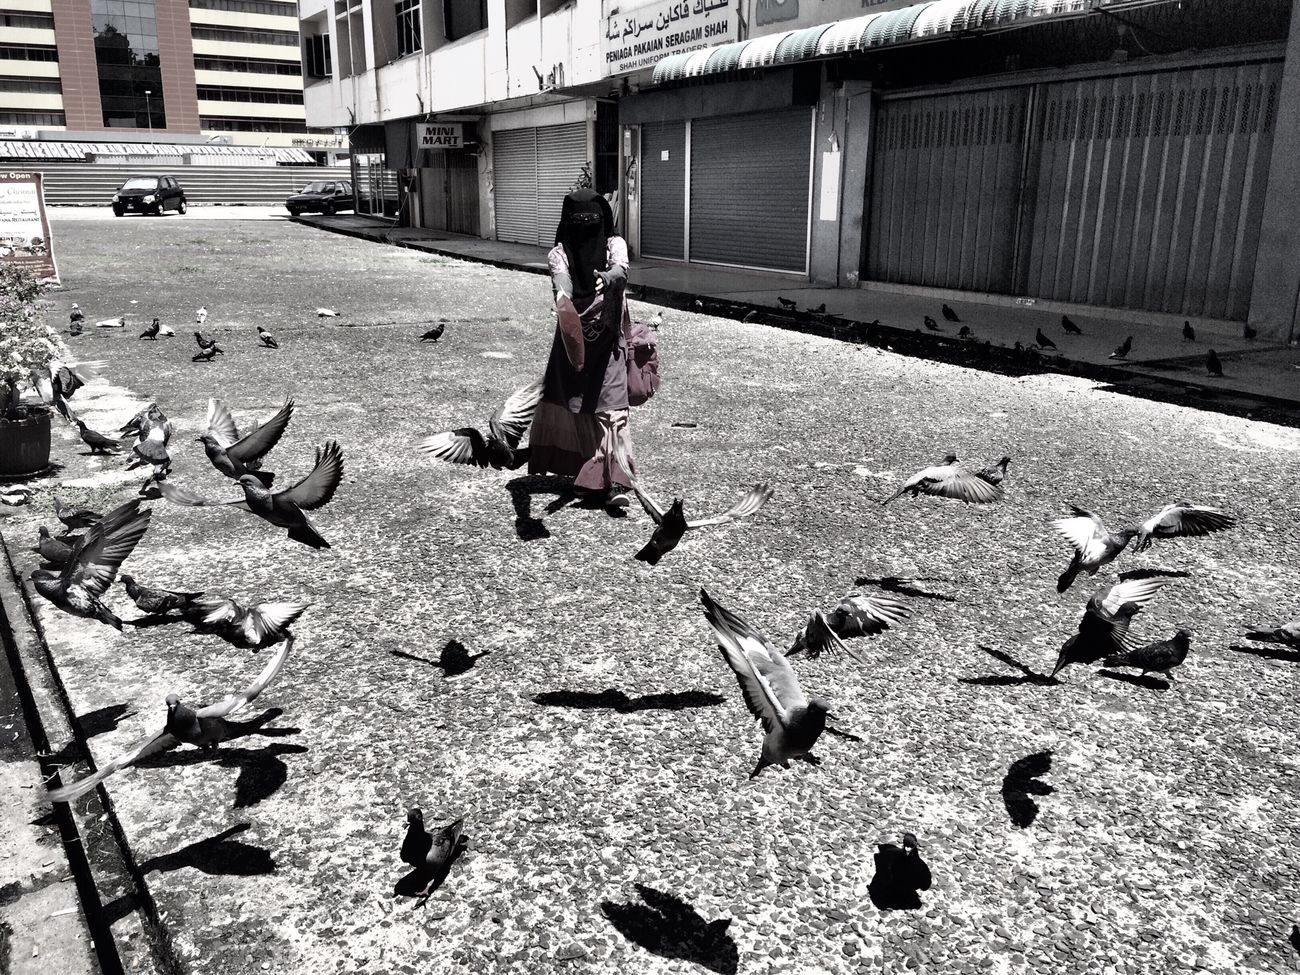 After shopping,stop by to scare the pigeon.haha... Enjoying Life Quality Time Zfrhhsdn